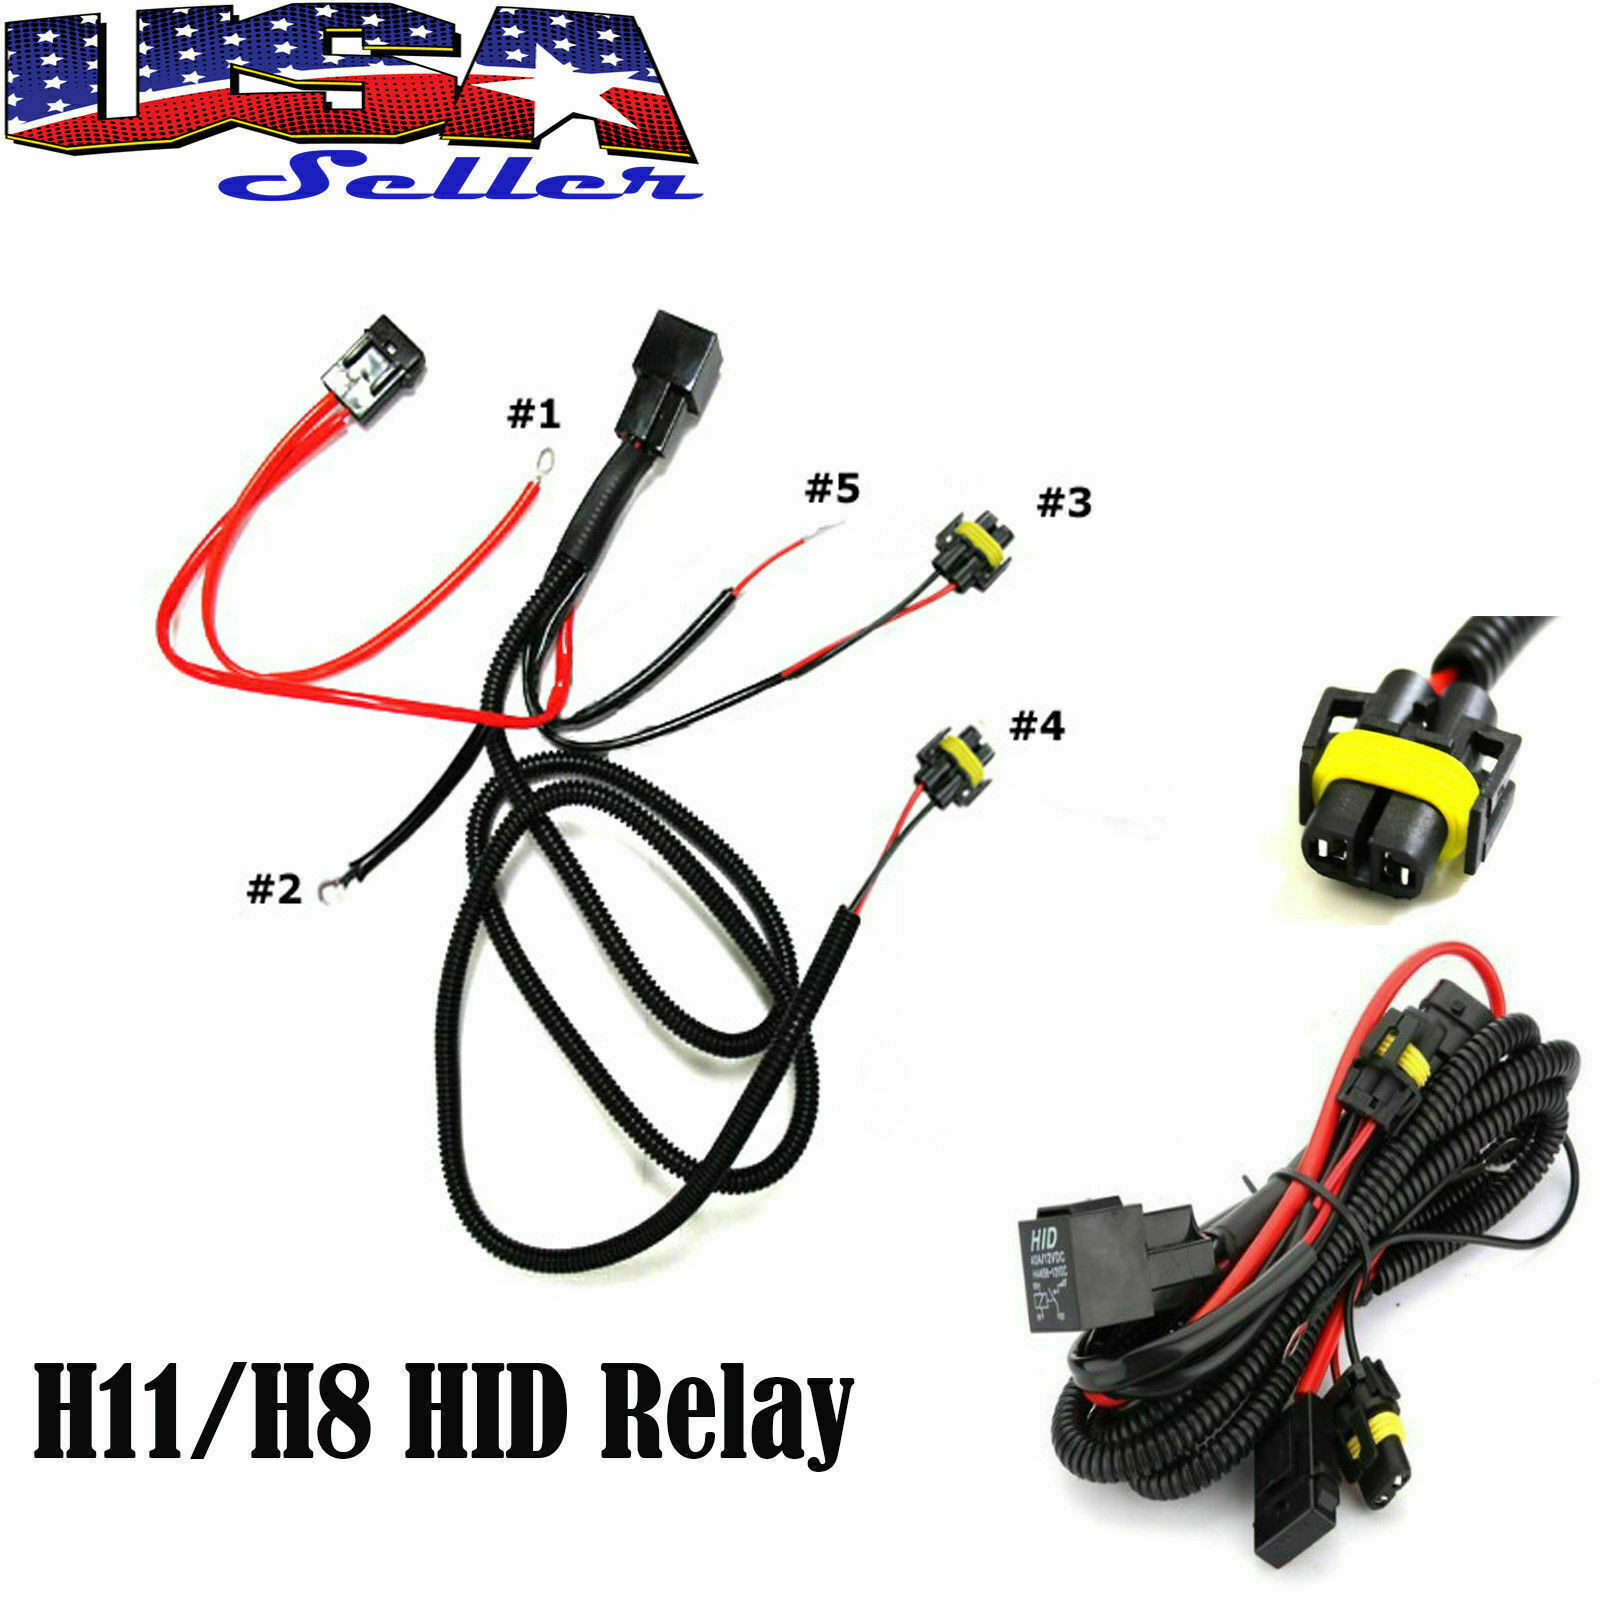 H11 880 Relay Wiring Harness For Hid Conversion Kit Add On Fog Lights 1 Of 6free Shipping